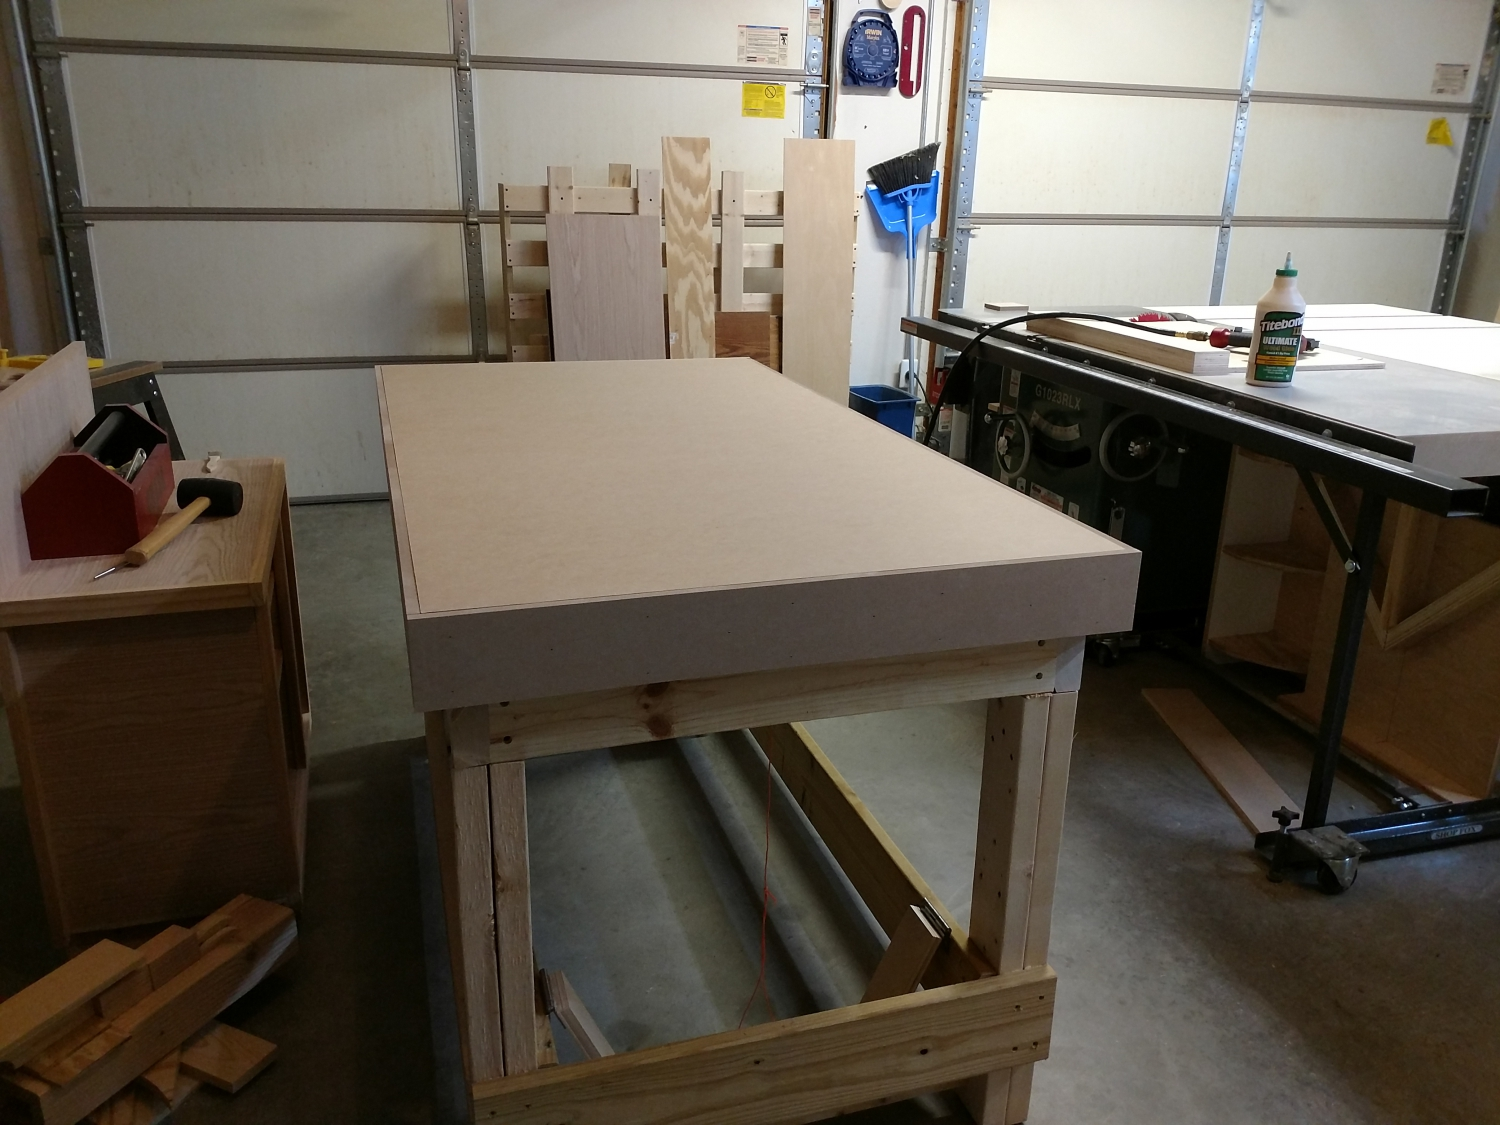 Torsion Box Workbench For My Woodshop - What I Did - With Pictures